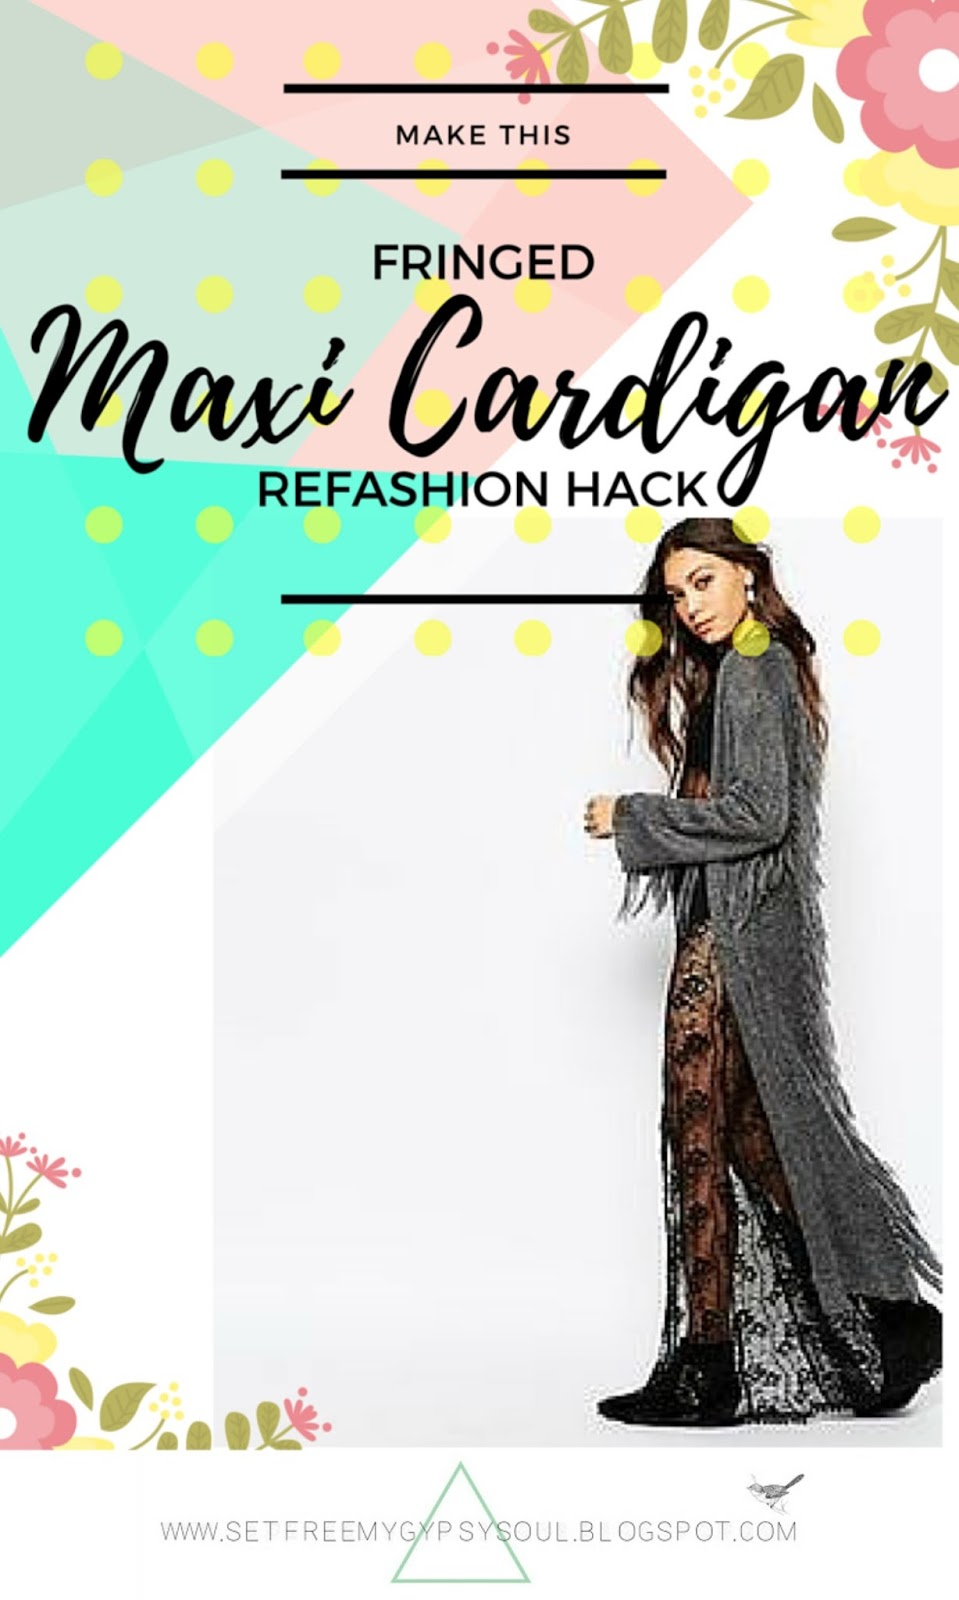 maxi fringed cardigan poncho festival fashion hack pattern diy